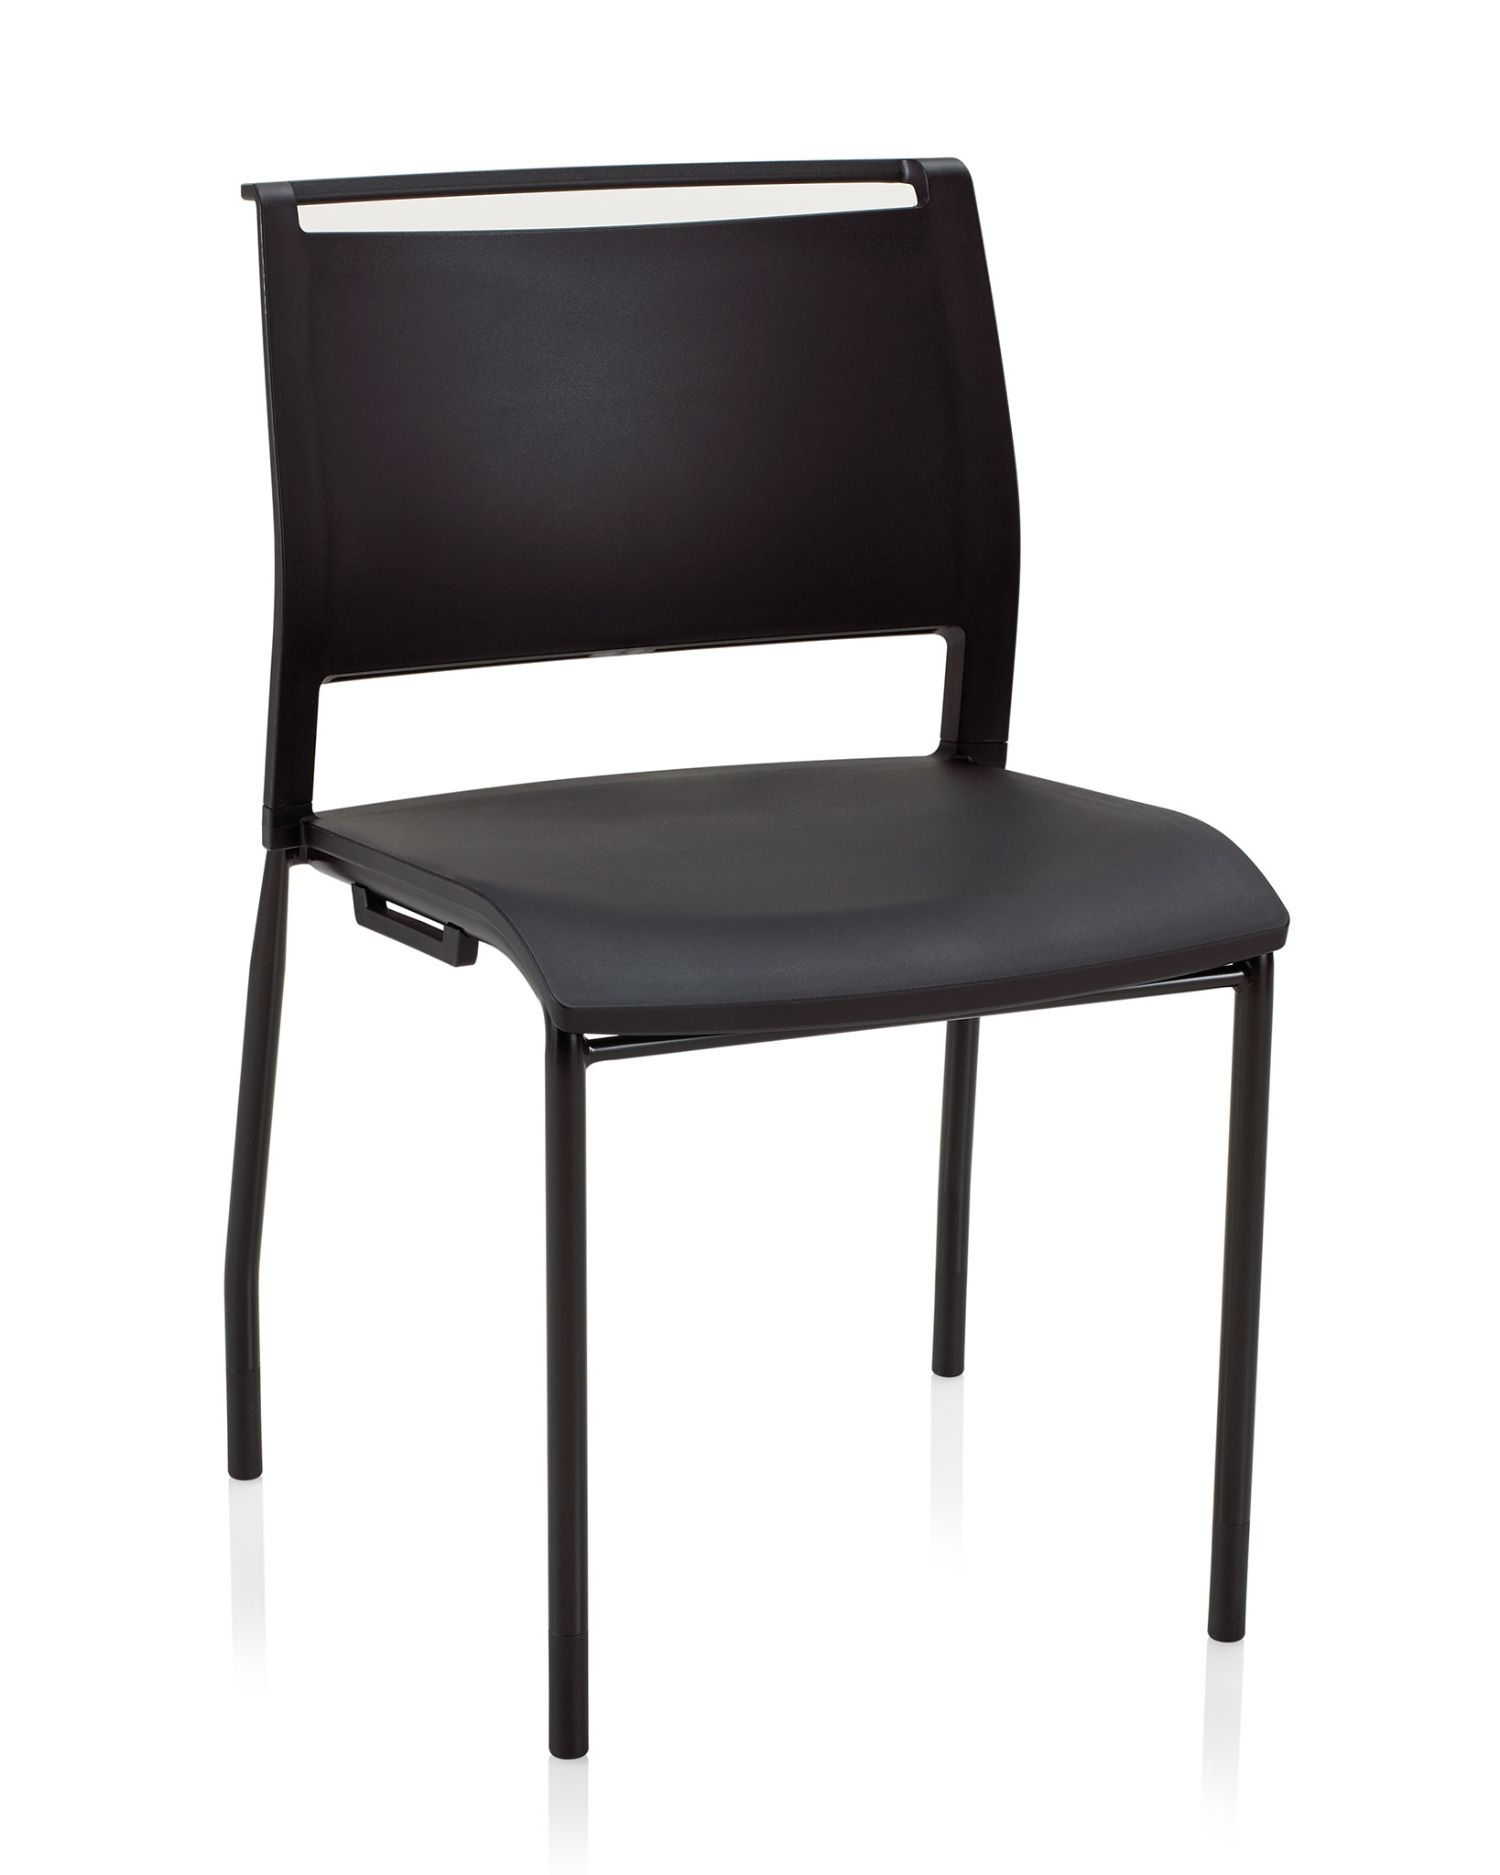 opt4 stacking chair in black